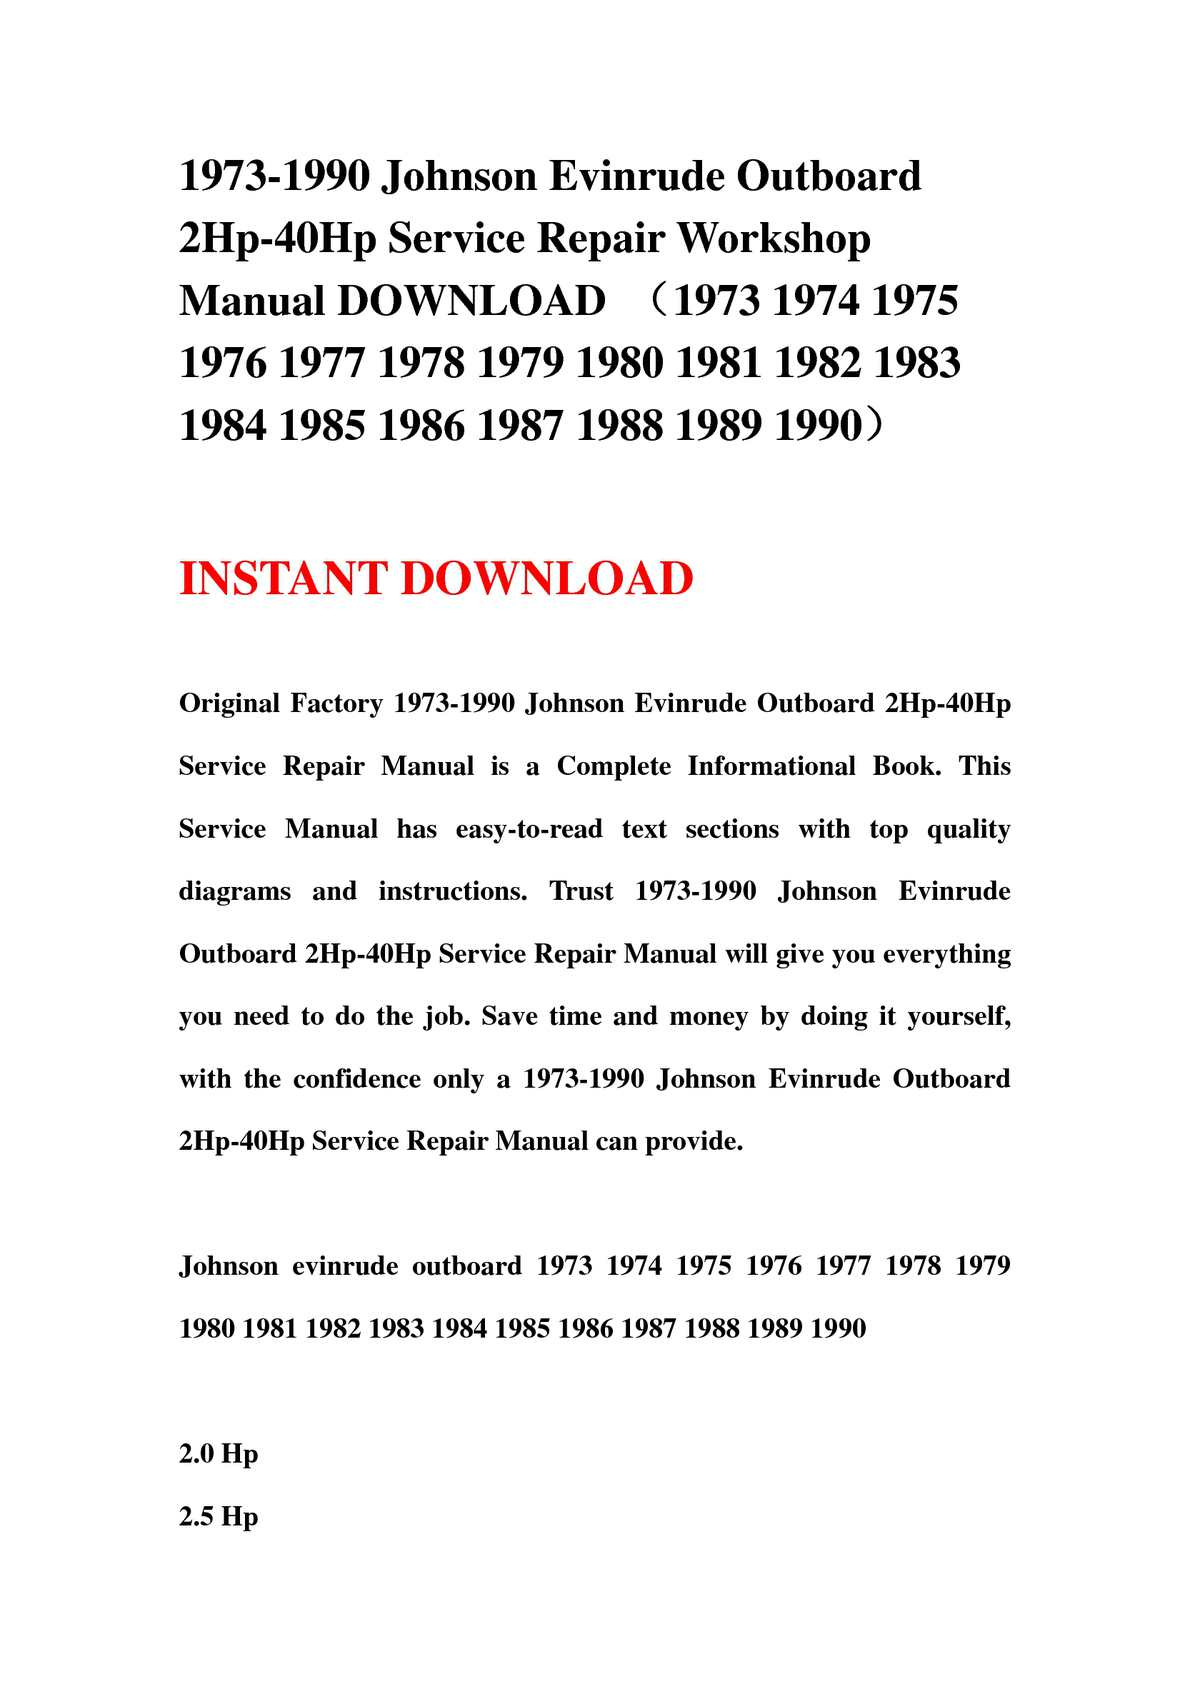 Calaméo - 1973-1990 Johnson Evinrude Outboard 2Hp-40Hp Service Repair  Workshop Manual DOWNLOAD (1973 1974 1975 1976 1977 1978 1979 1980 1981 1982  1983 1984 ...